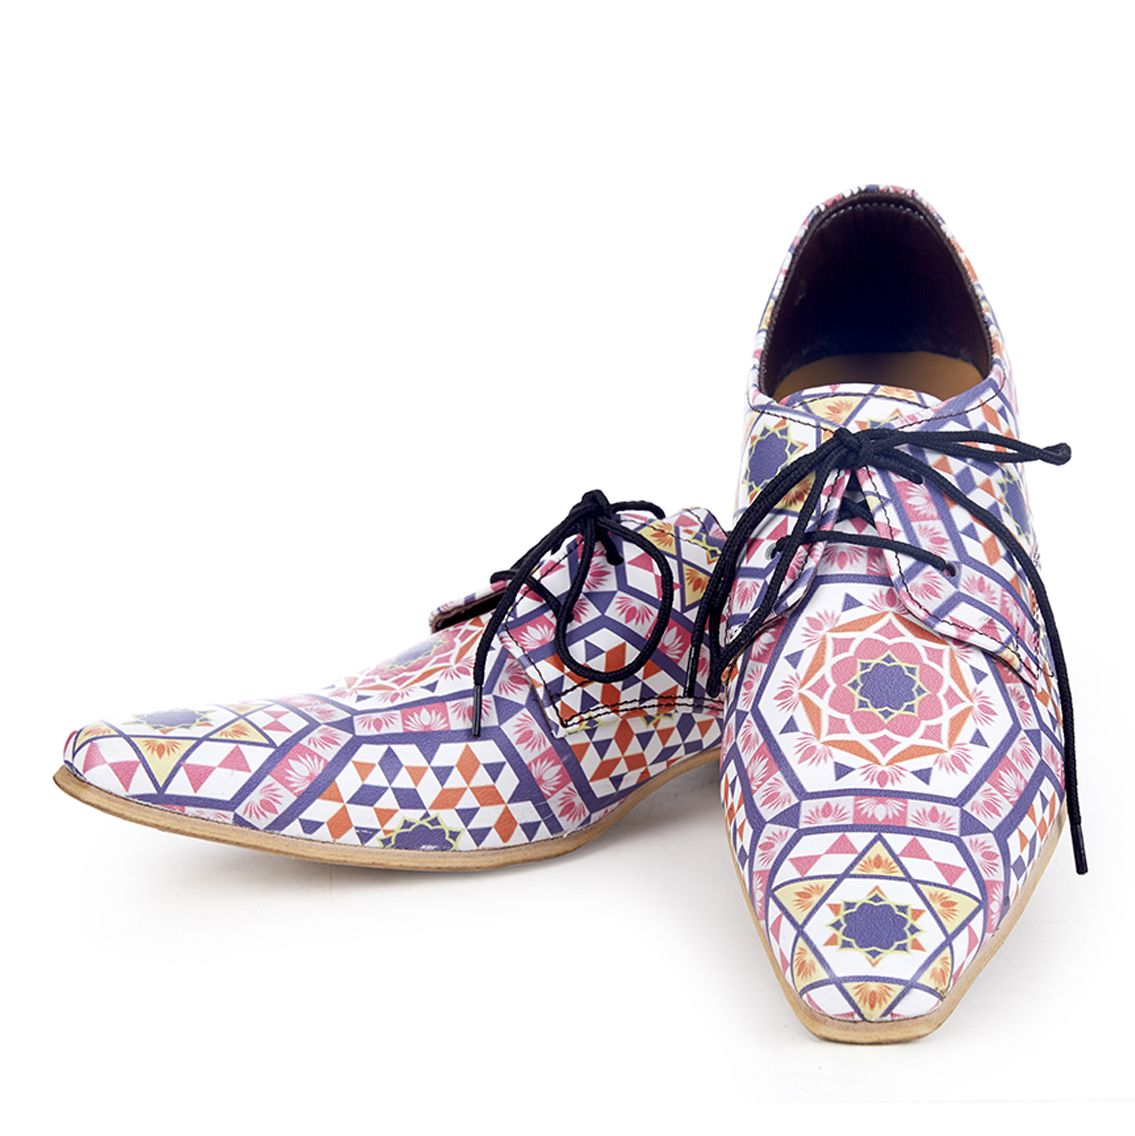 Kanwal Lotus Handmade Printed Shoes